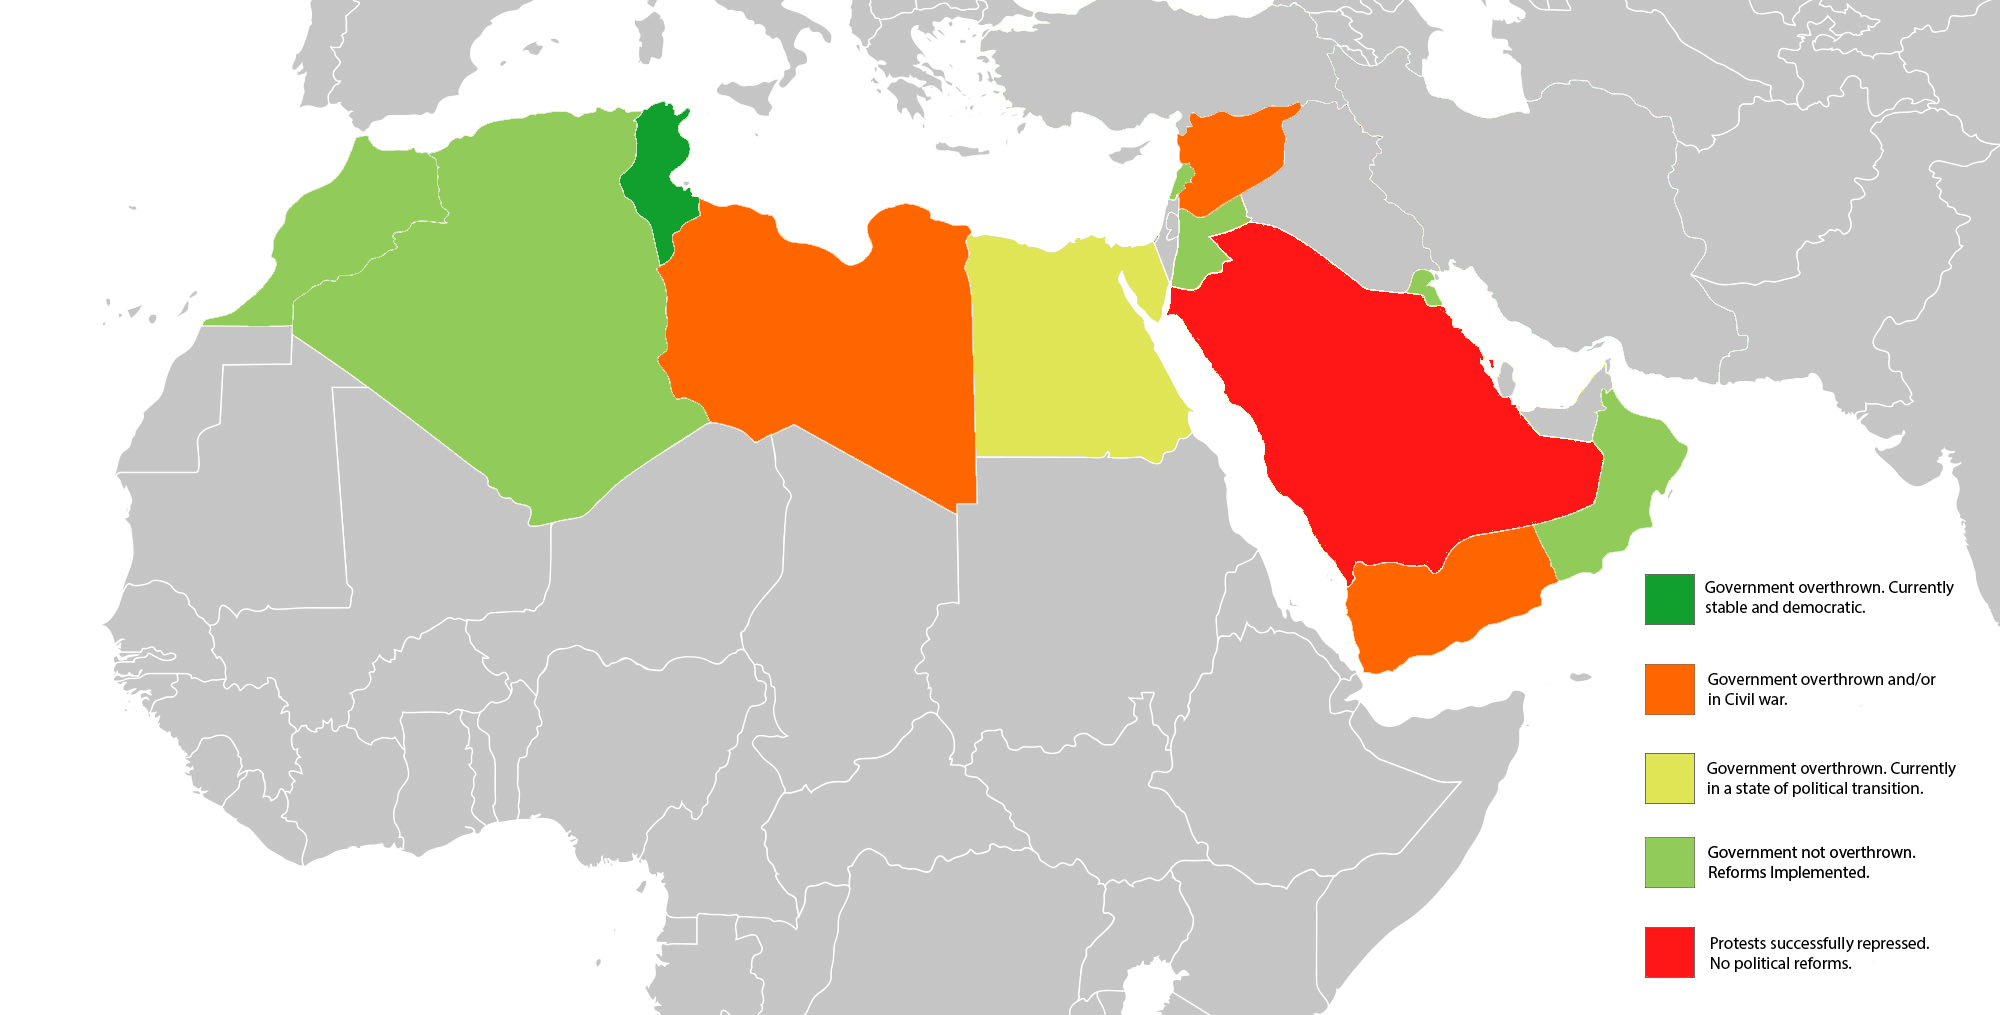 Current state of 'Arab Spring' countries. | Map, Cartography ... on map of syria and libya, map of middle east arab countries, map of arab world countries, map of arab spring protests to from today, map of middle east uprising, map of south west africa, map of middle east and africa, map of arab spring protests in bahrain, map of the arab spring, map of arab countries and their capitals in arabic, map of arab region, map of the arab countries, which are the arab countries,